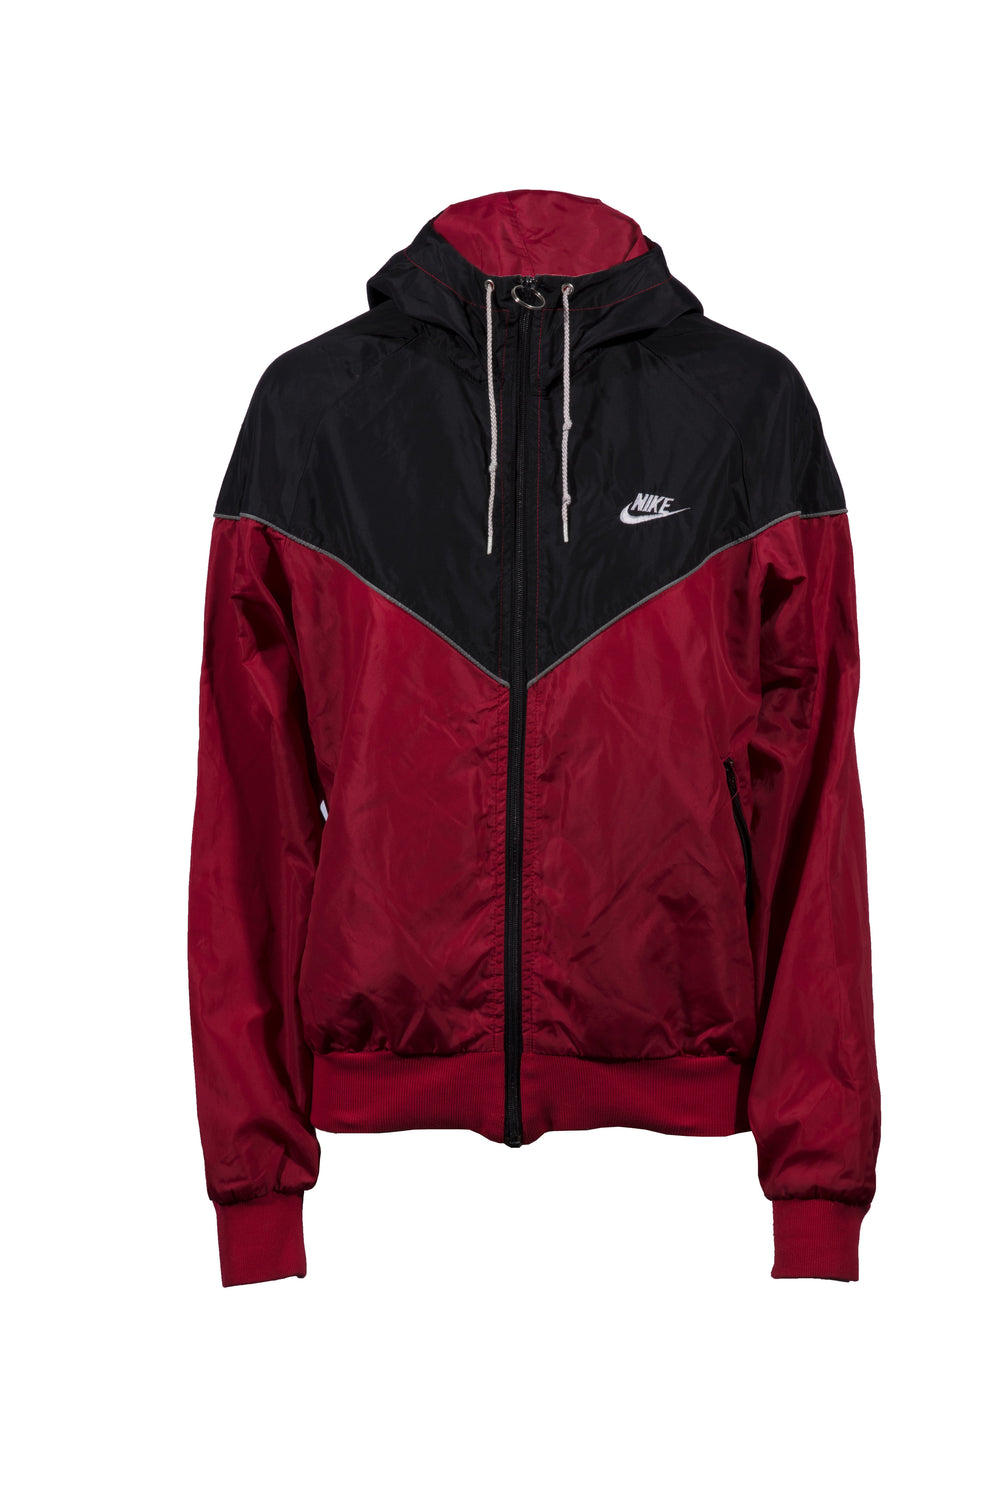 f0f4649710a6 WOMEN S NIKE BLACK RED EMBROIDERED WINDRUNNER – Three Stacks Melbourne